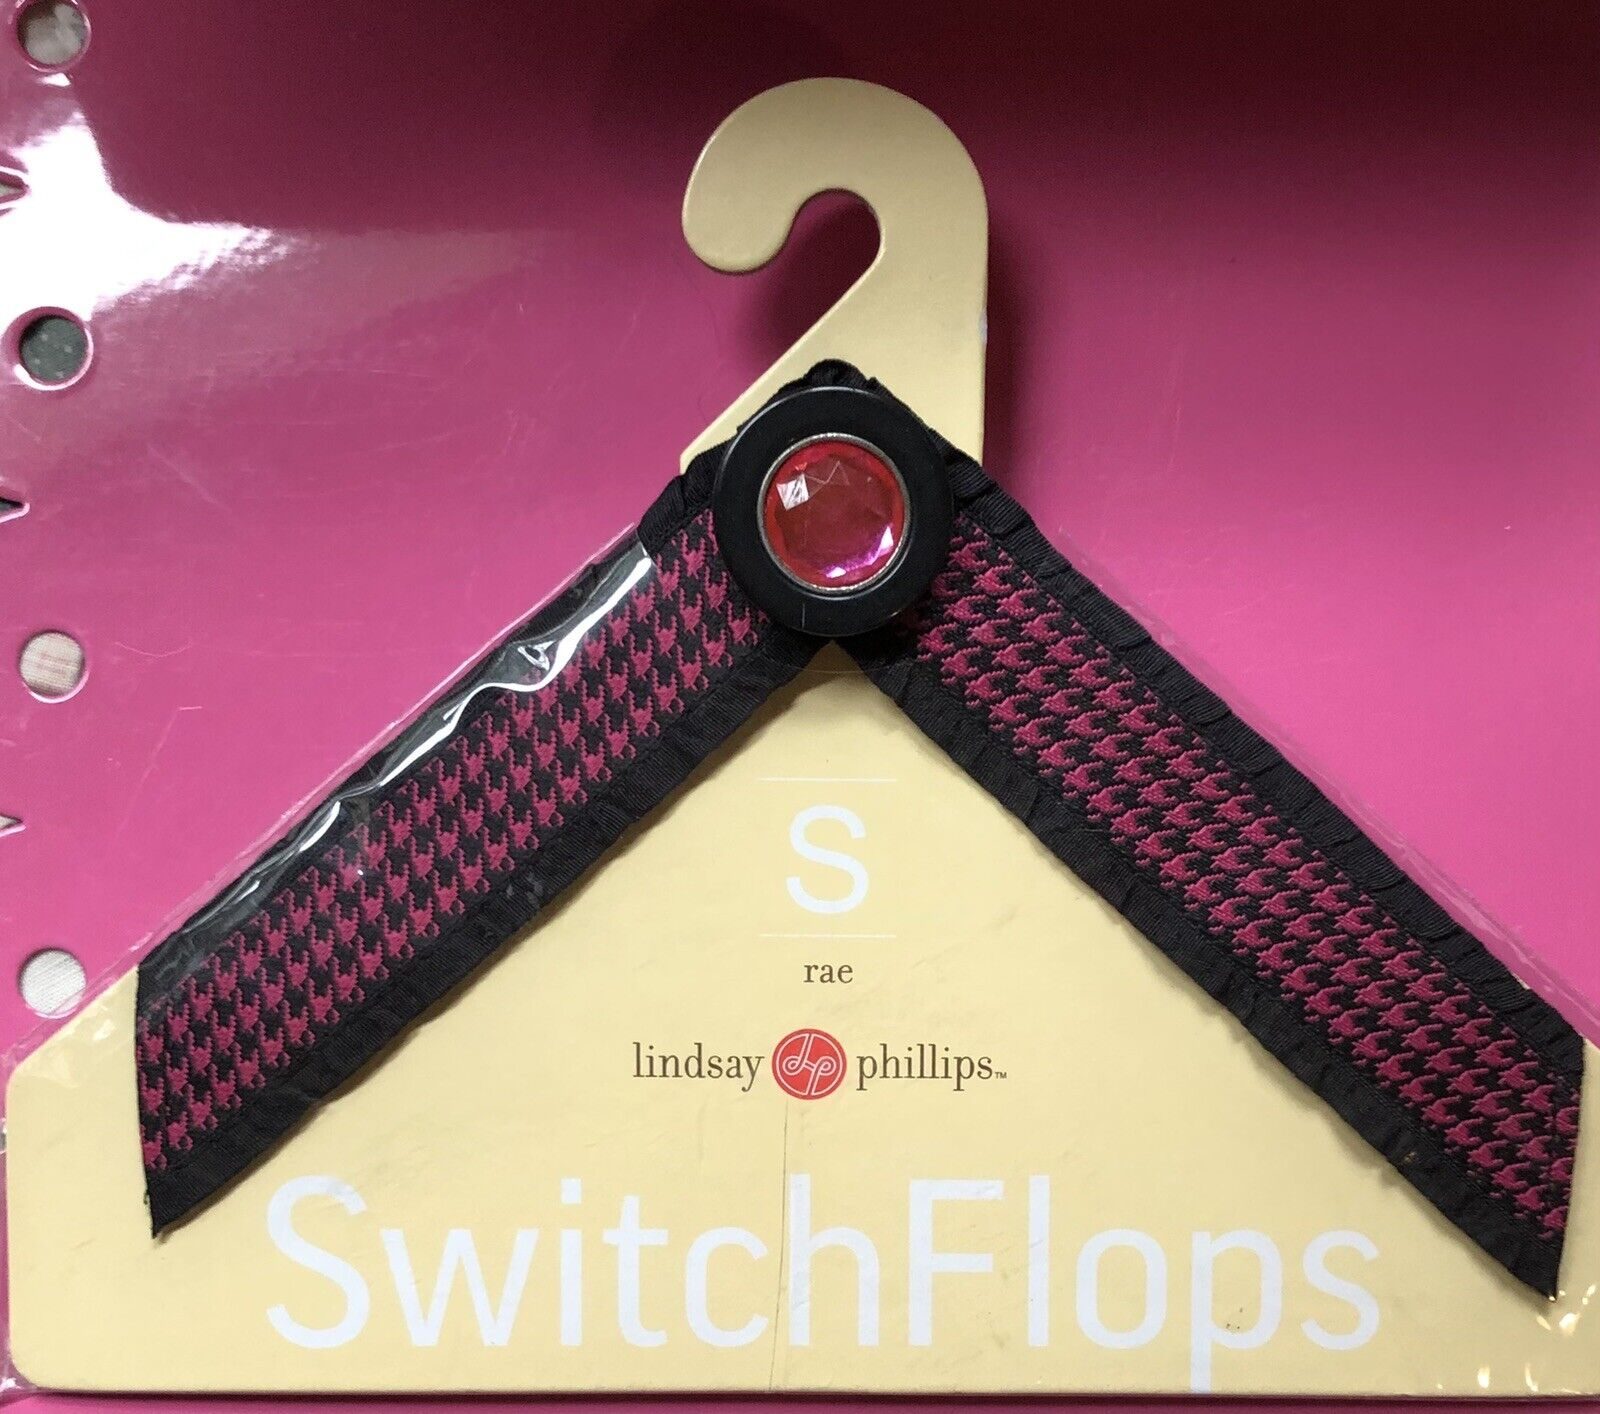 lindsay phillips switchflops straps small 5-6 Rae